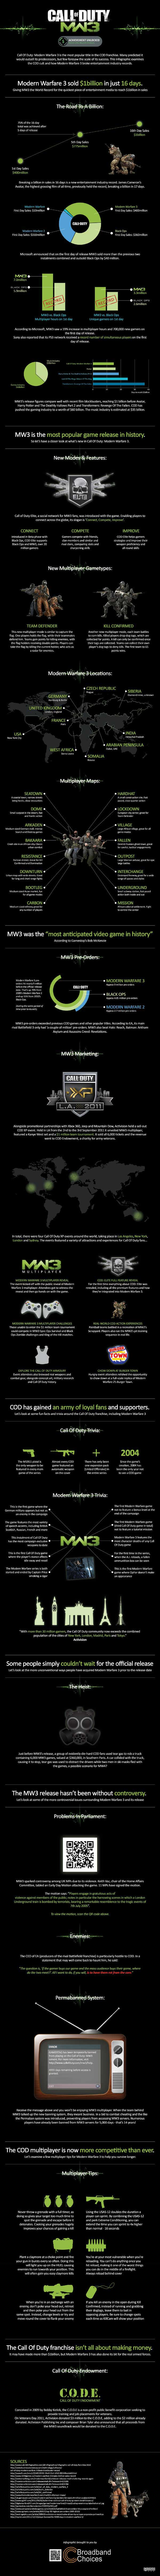 How MW3 Broke Entertainment Industry Records